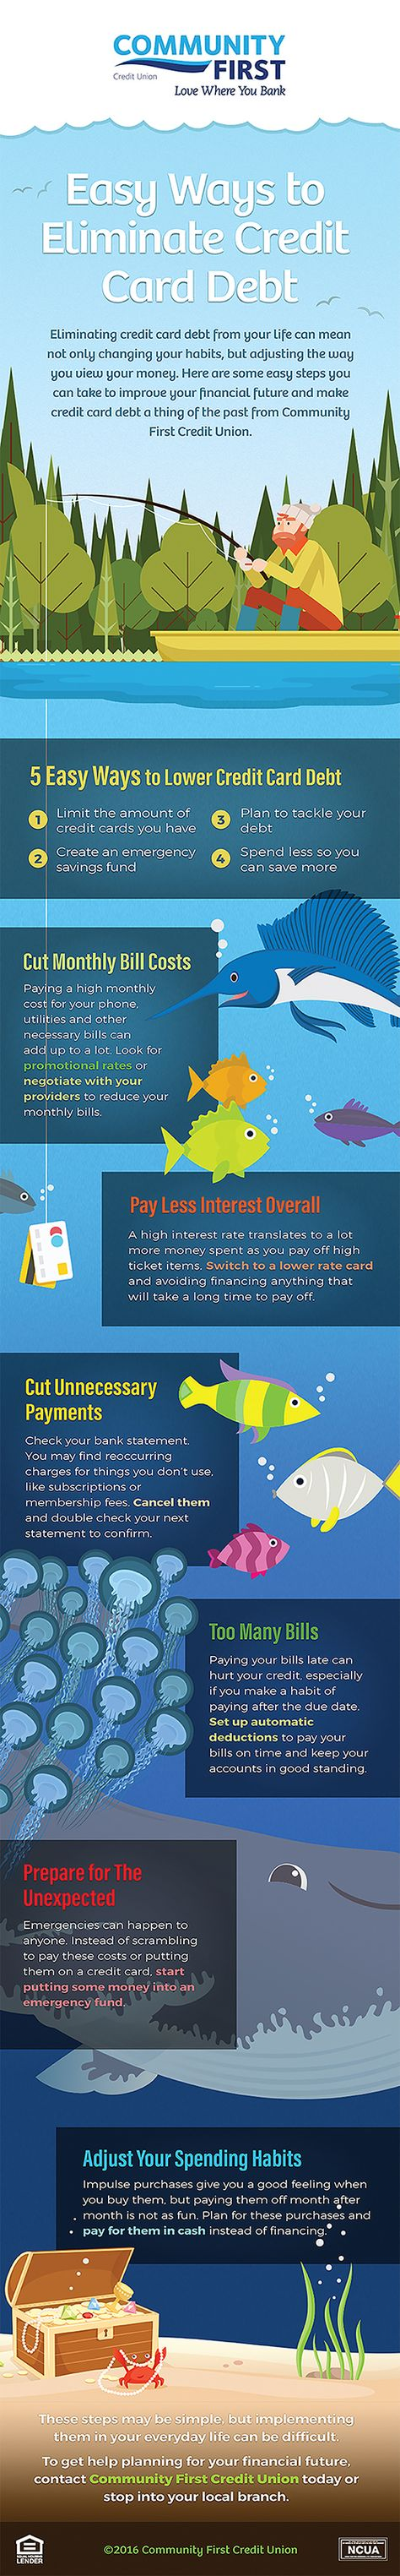 Easy Ways to Eliminate Credit Card Debt [Infographic]